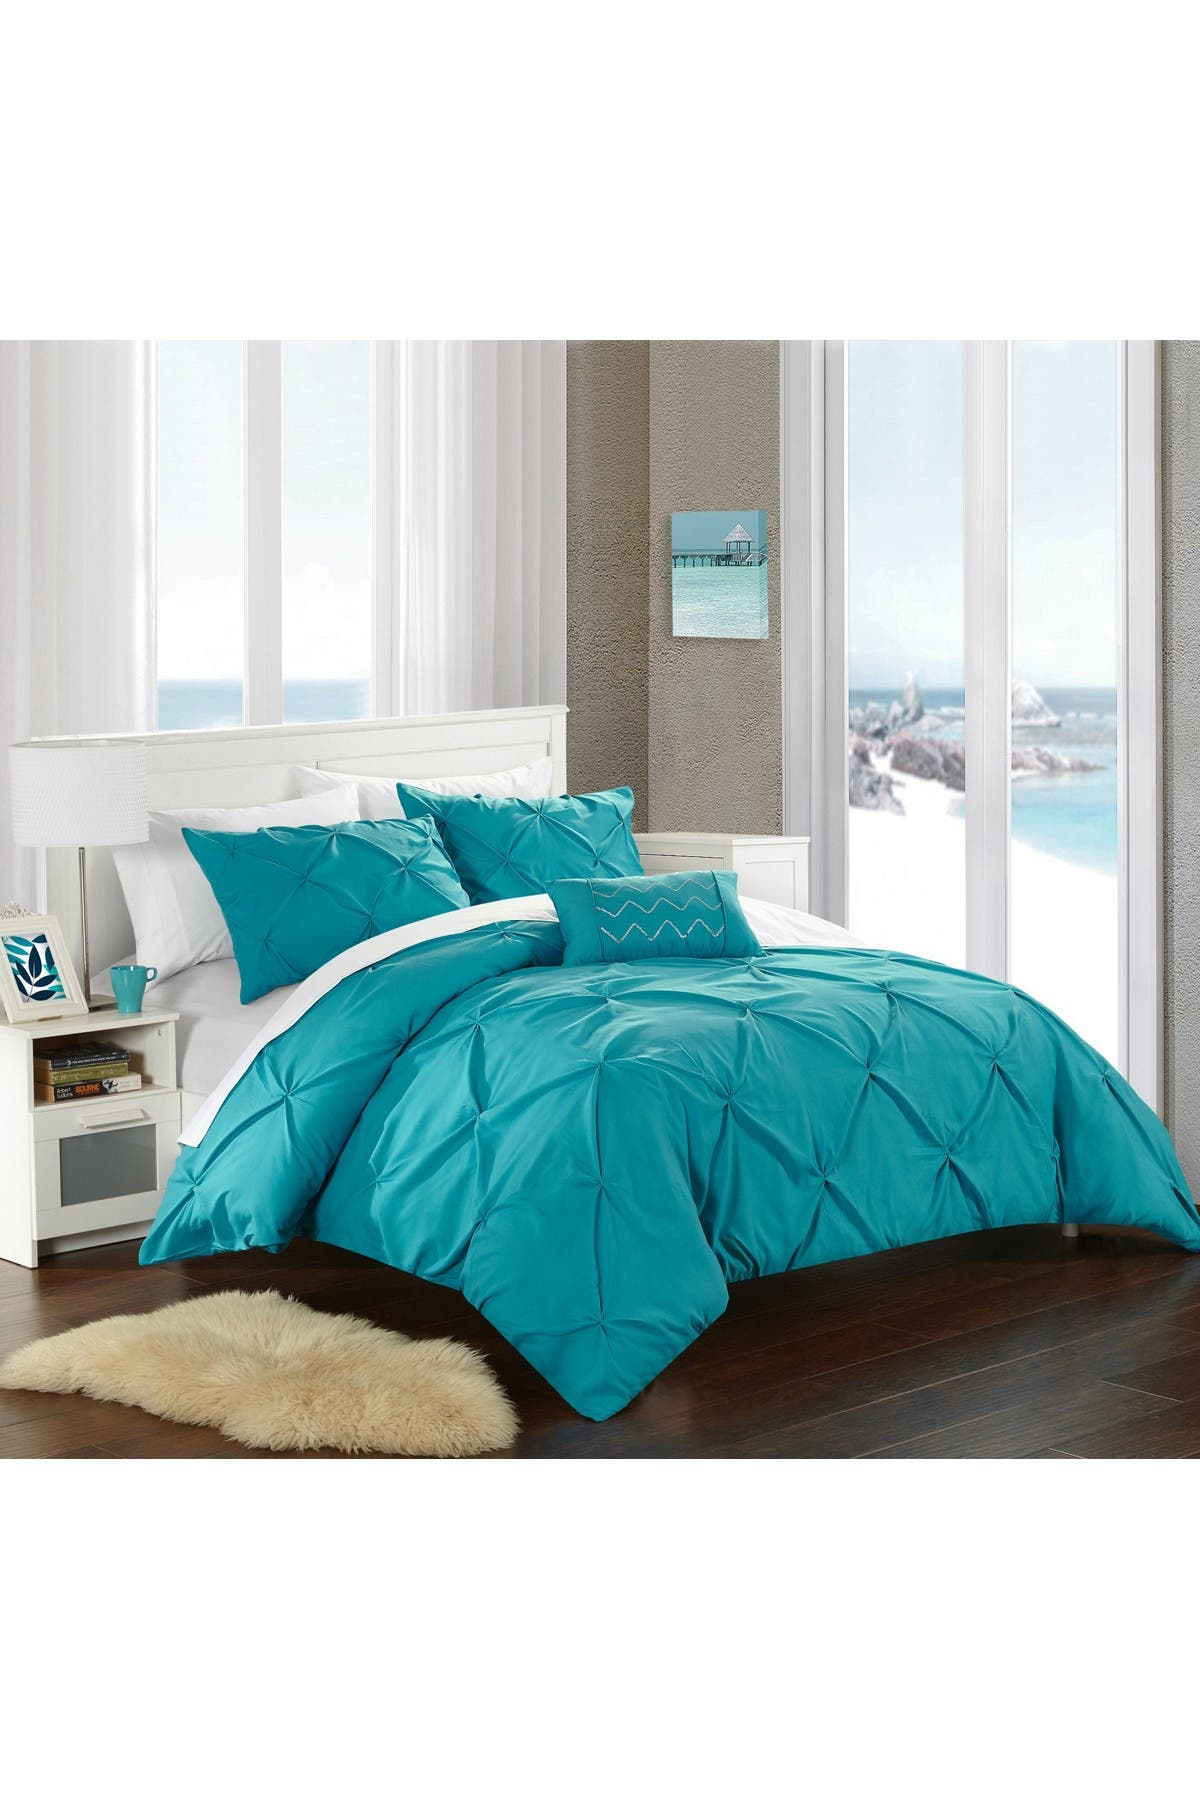 Image of Chic Home Bedding Weber Pinch Pleated, Ruffled & Pleated Complete Queen Duvet Cover 4-Piece Set, Turquoise